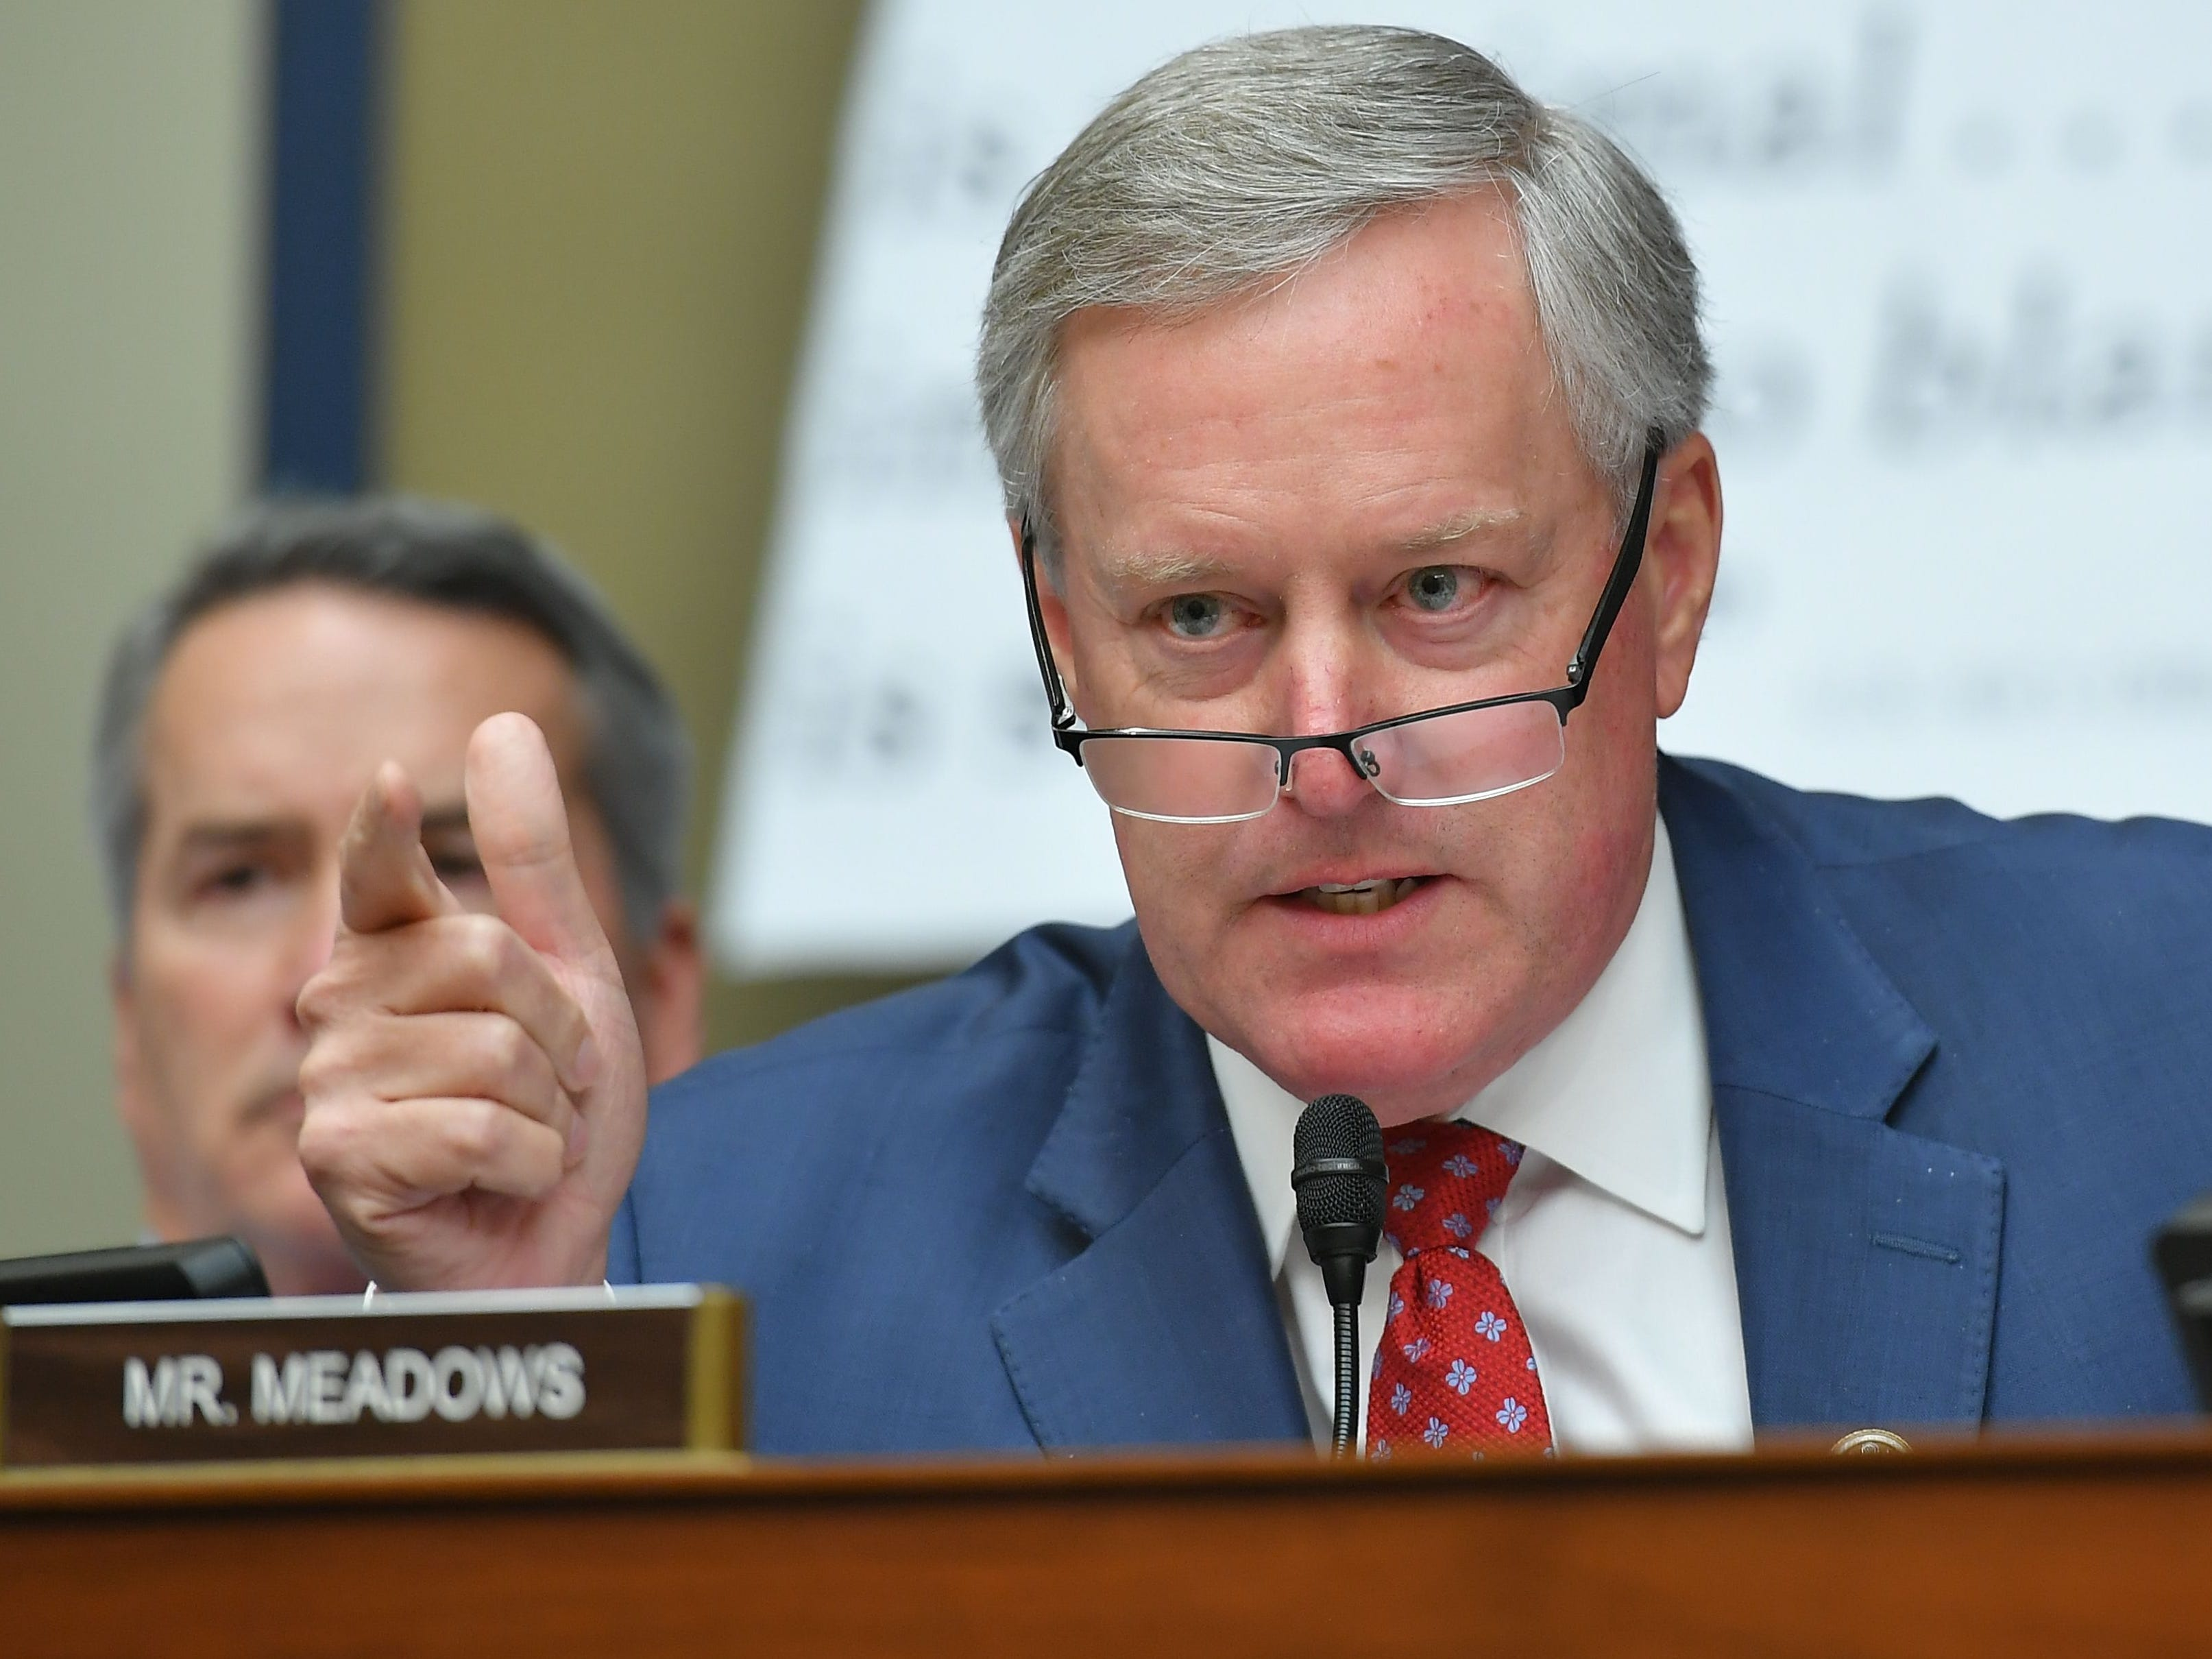 After denying racism, videos of Meadows vowing to send Obama 'home to Kenya' resurface